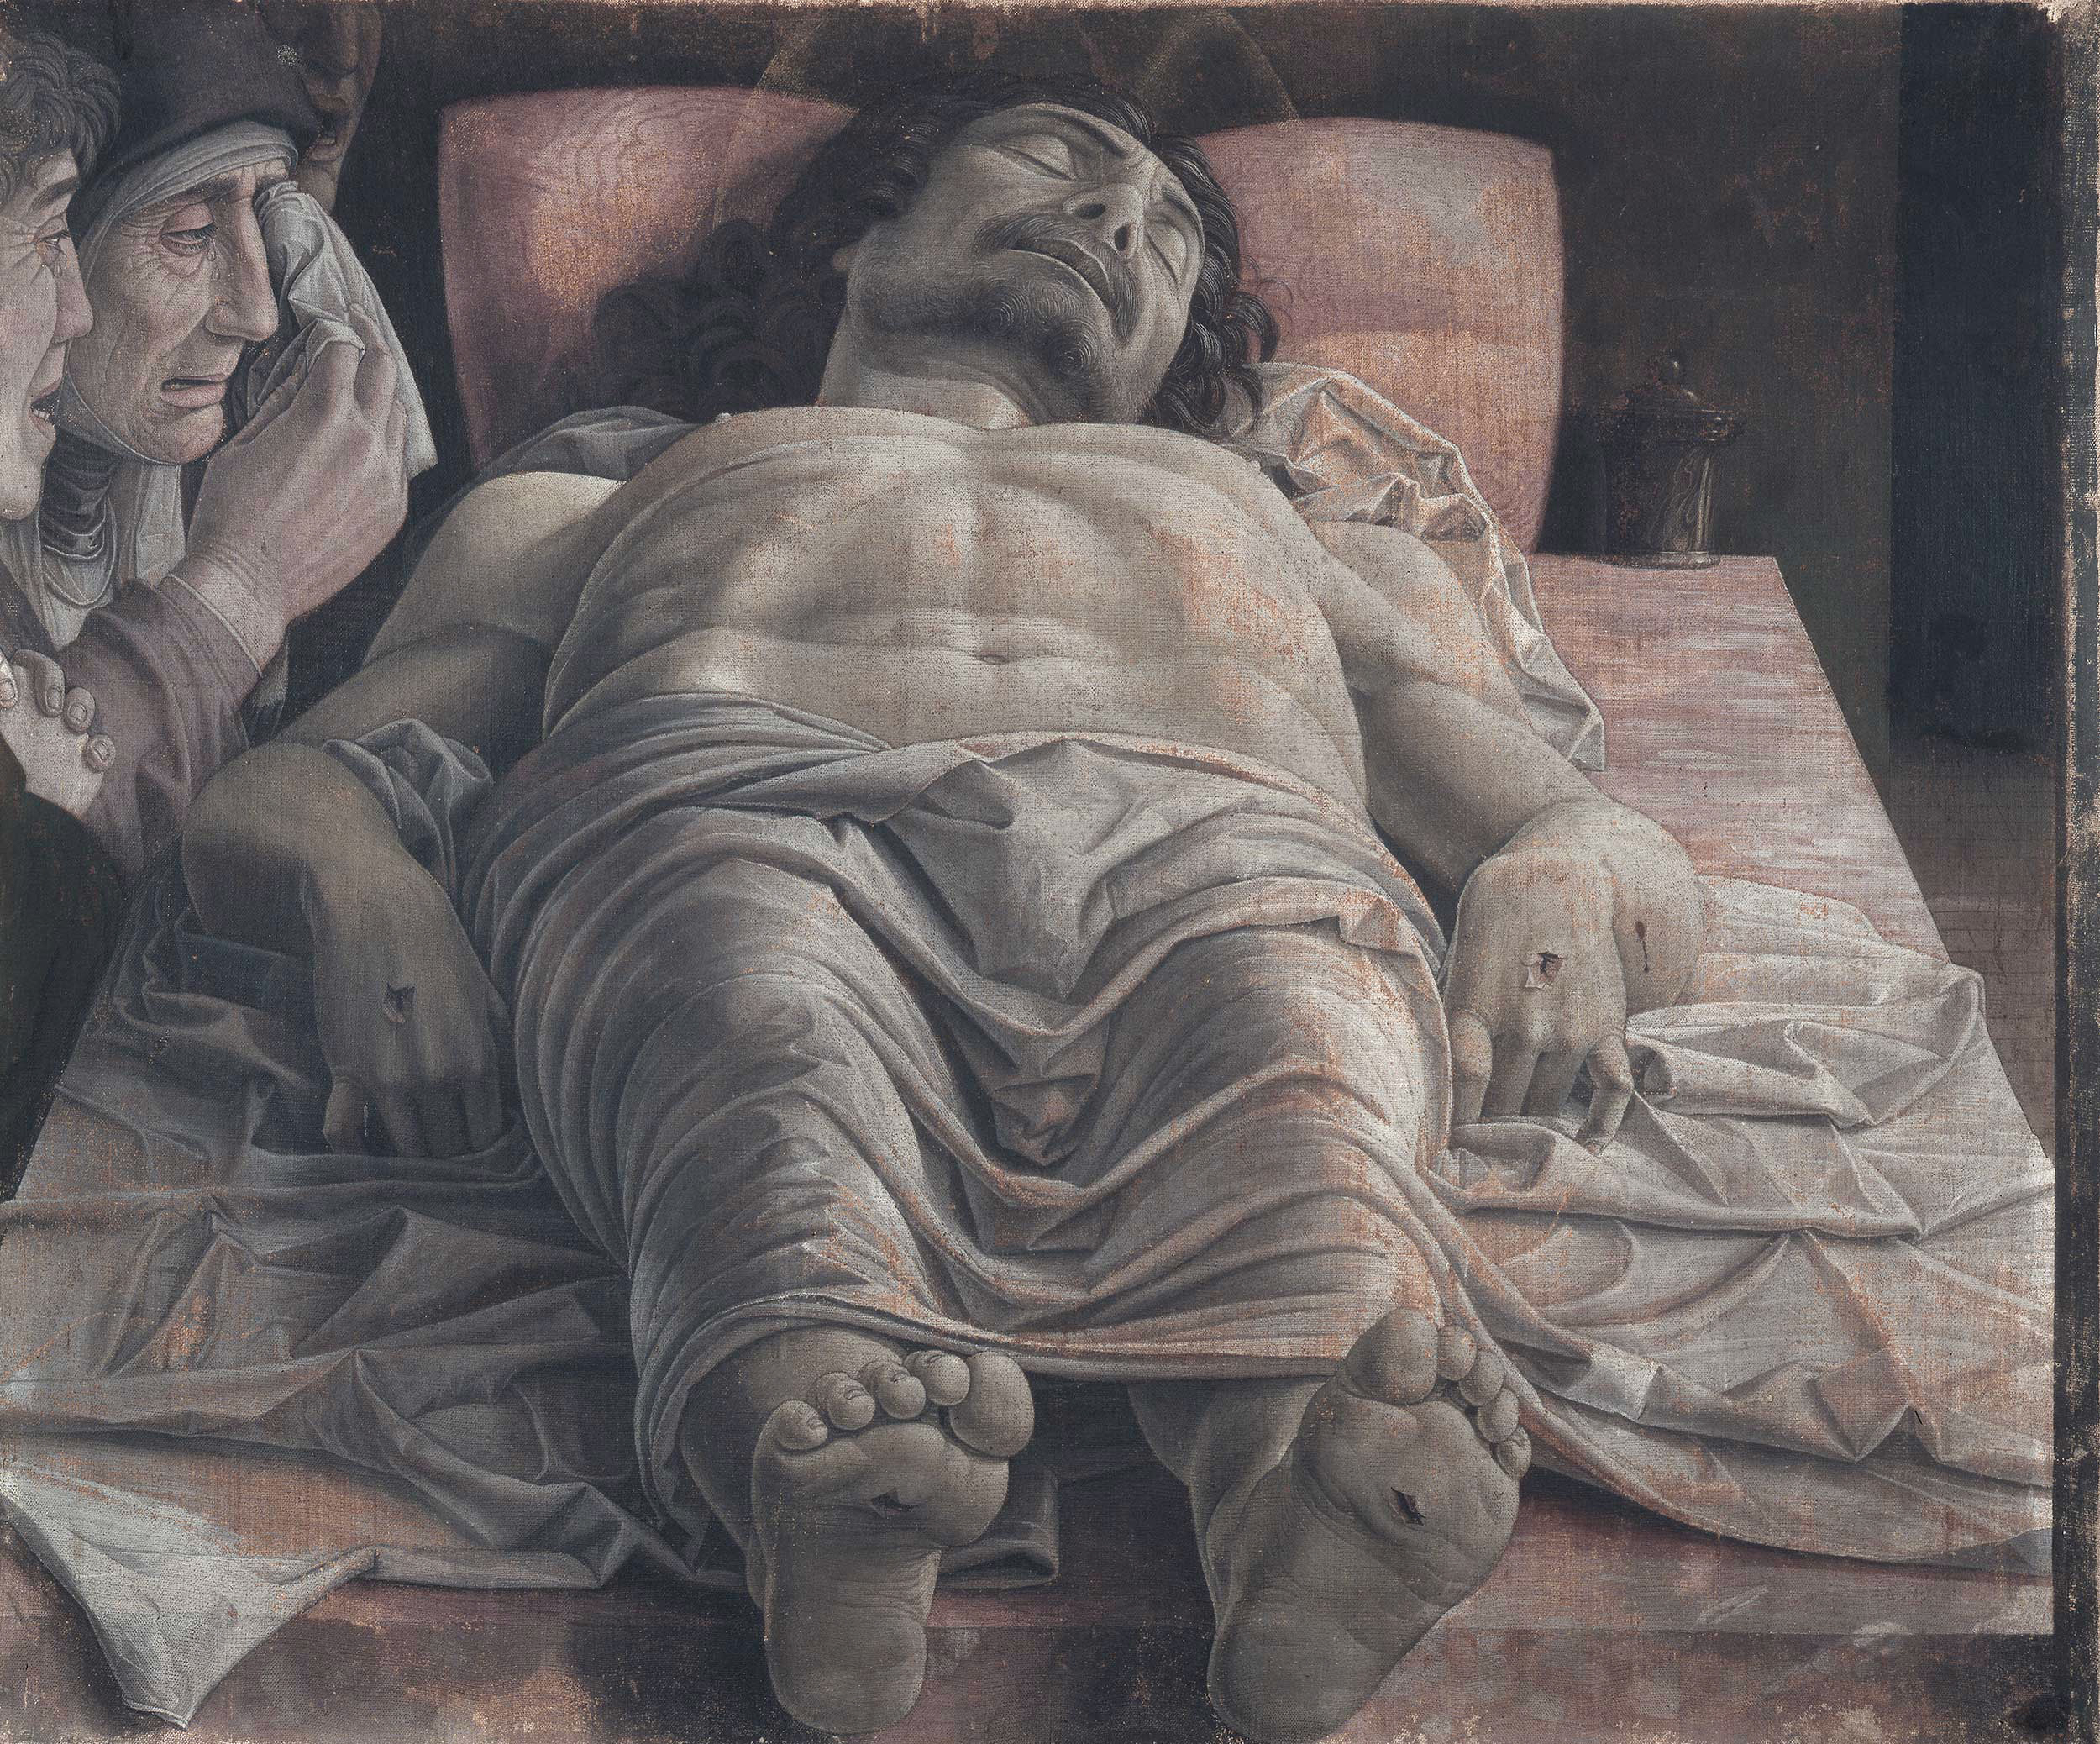 https://upload.wikimedia.org/wikipedia/commons/f/f4/The_dead_Christ_and_three_mourners%2C_by_Andrea_Mantegna.jpg